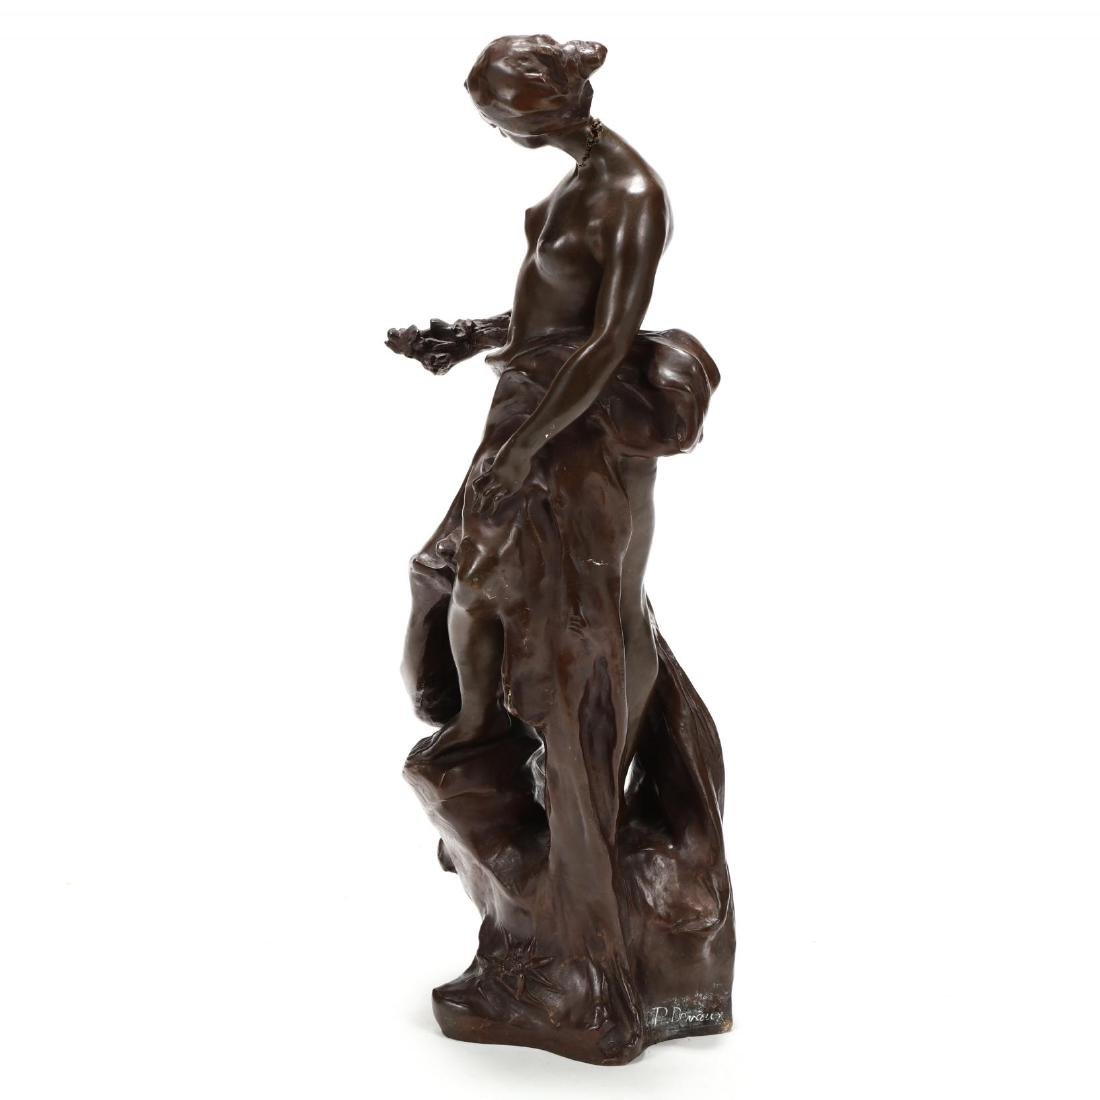 Pierre Devaux (French 1865-1938), Bronze Sculpture of a - 5